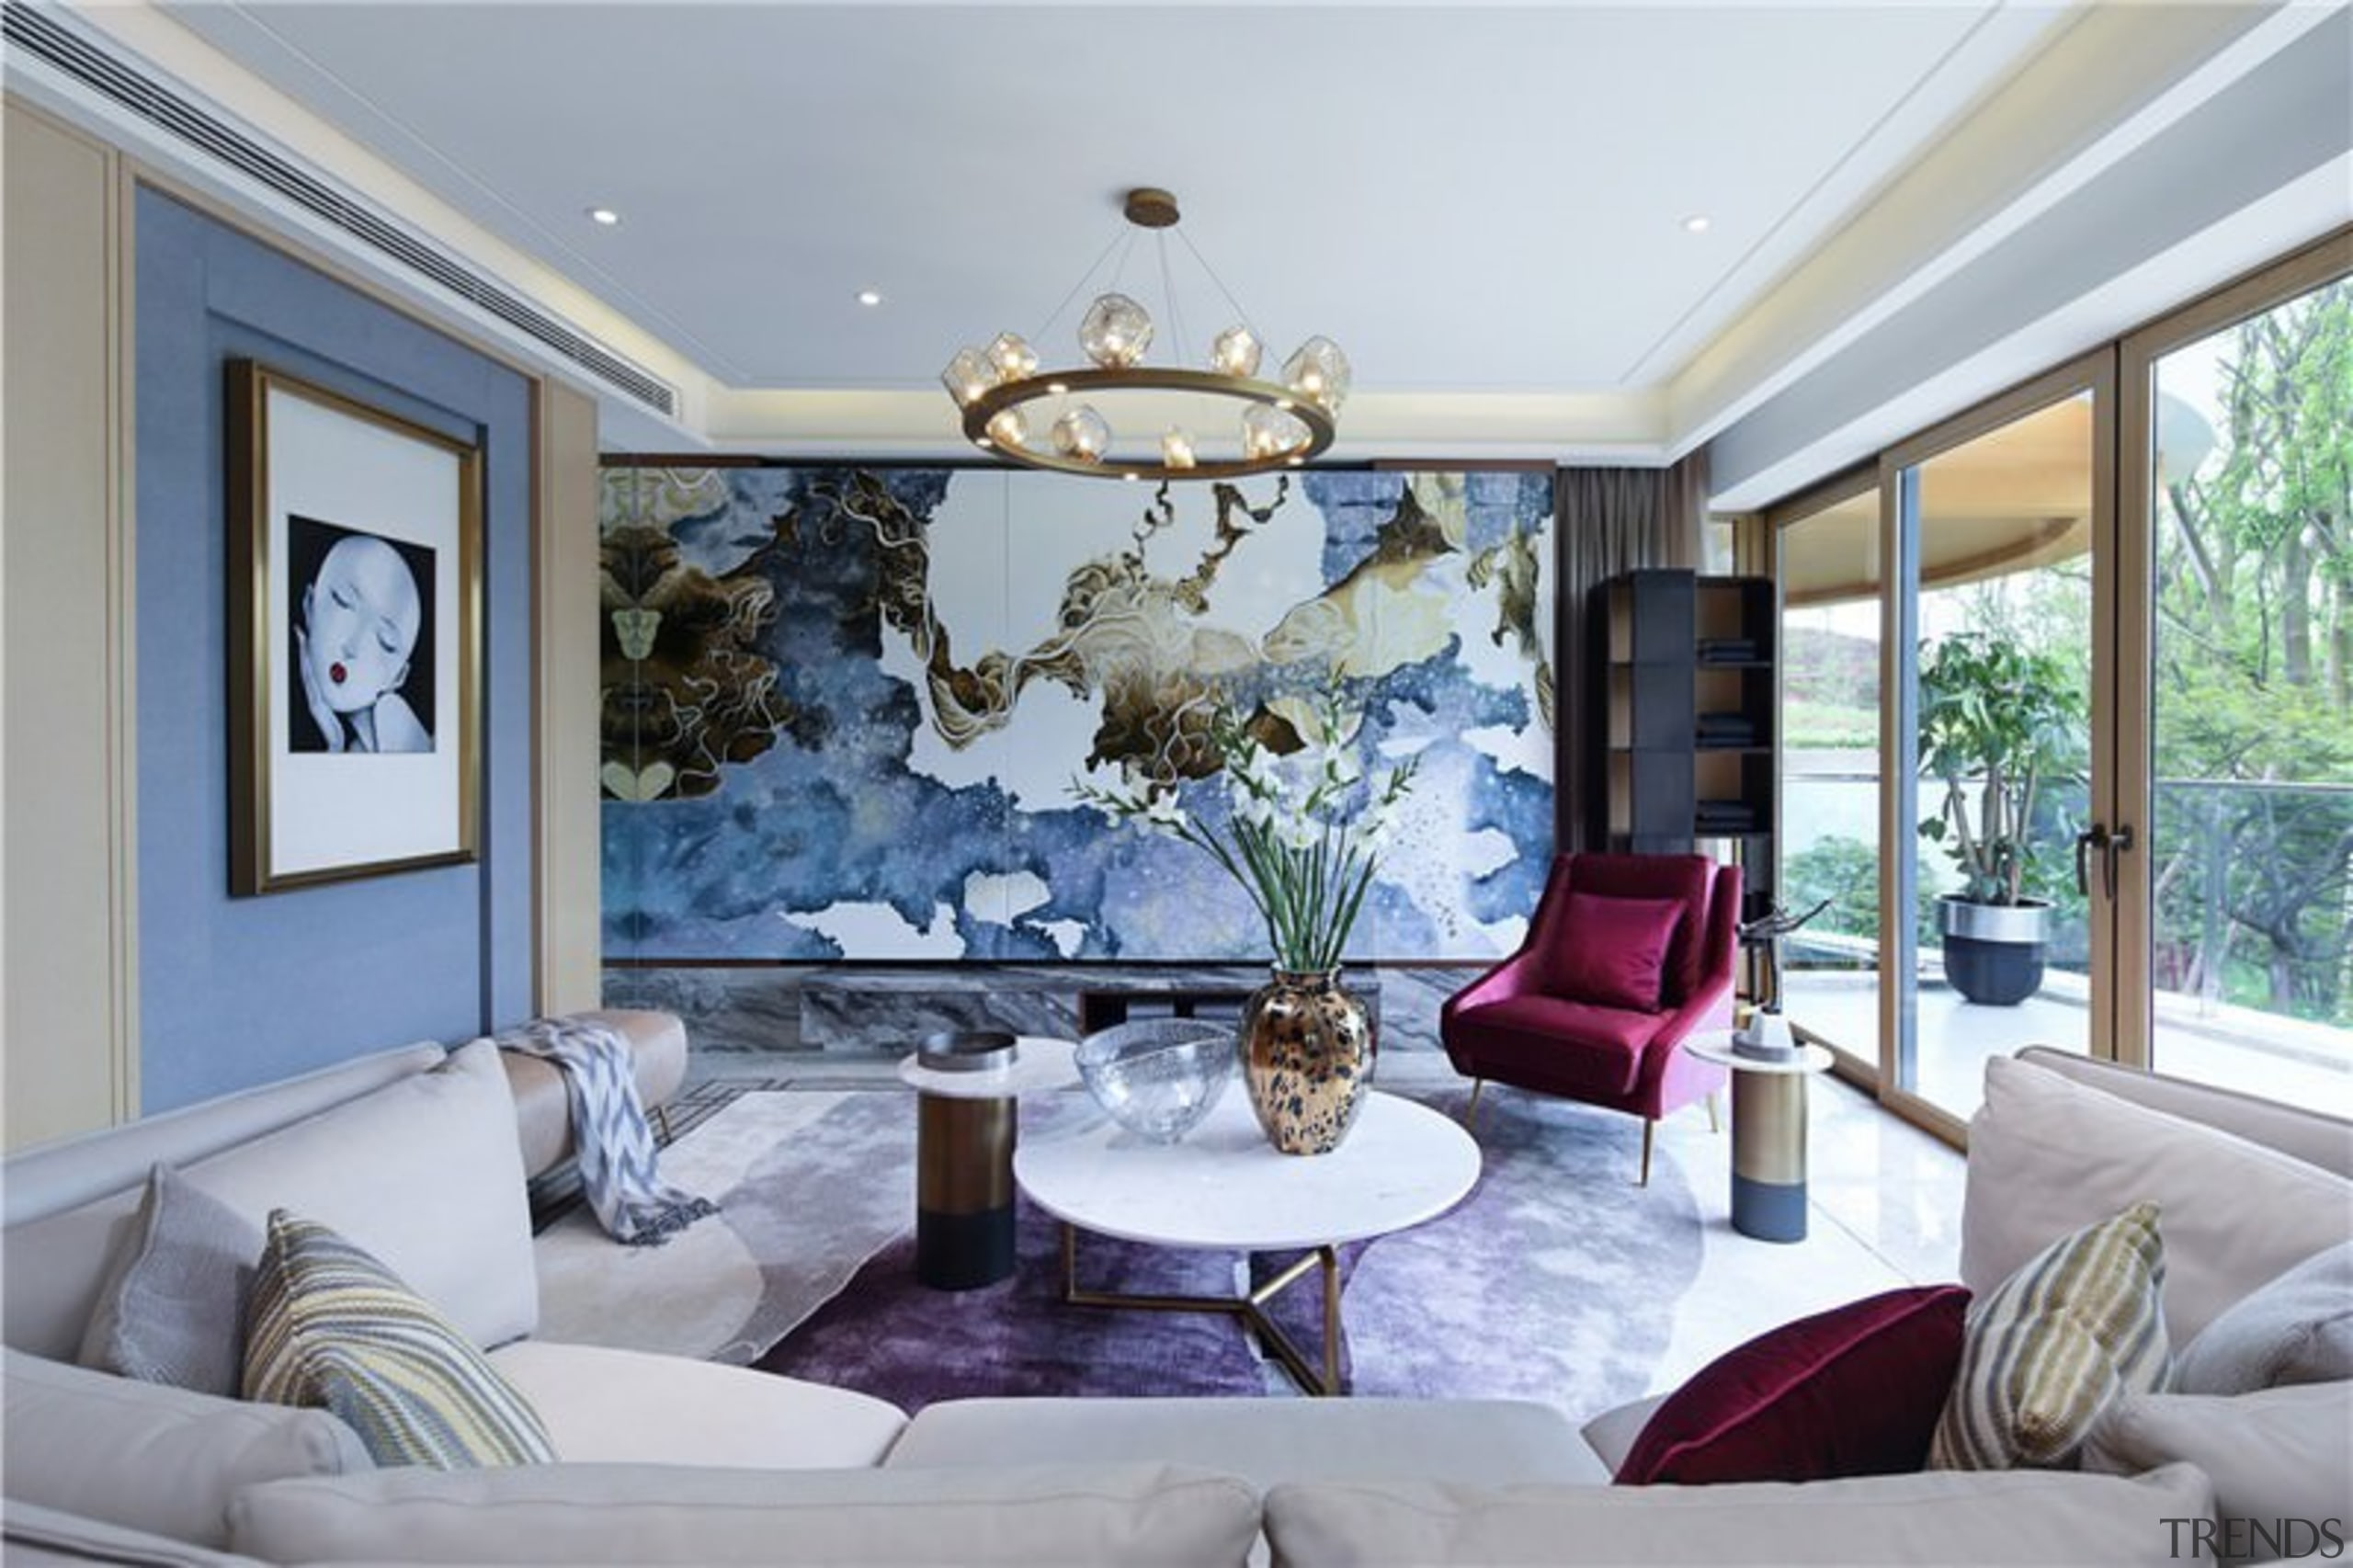 A feature wall unlike any other dominates the ceiling, estate, home, house, interior design, living room, property, real estate, room, window, gray